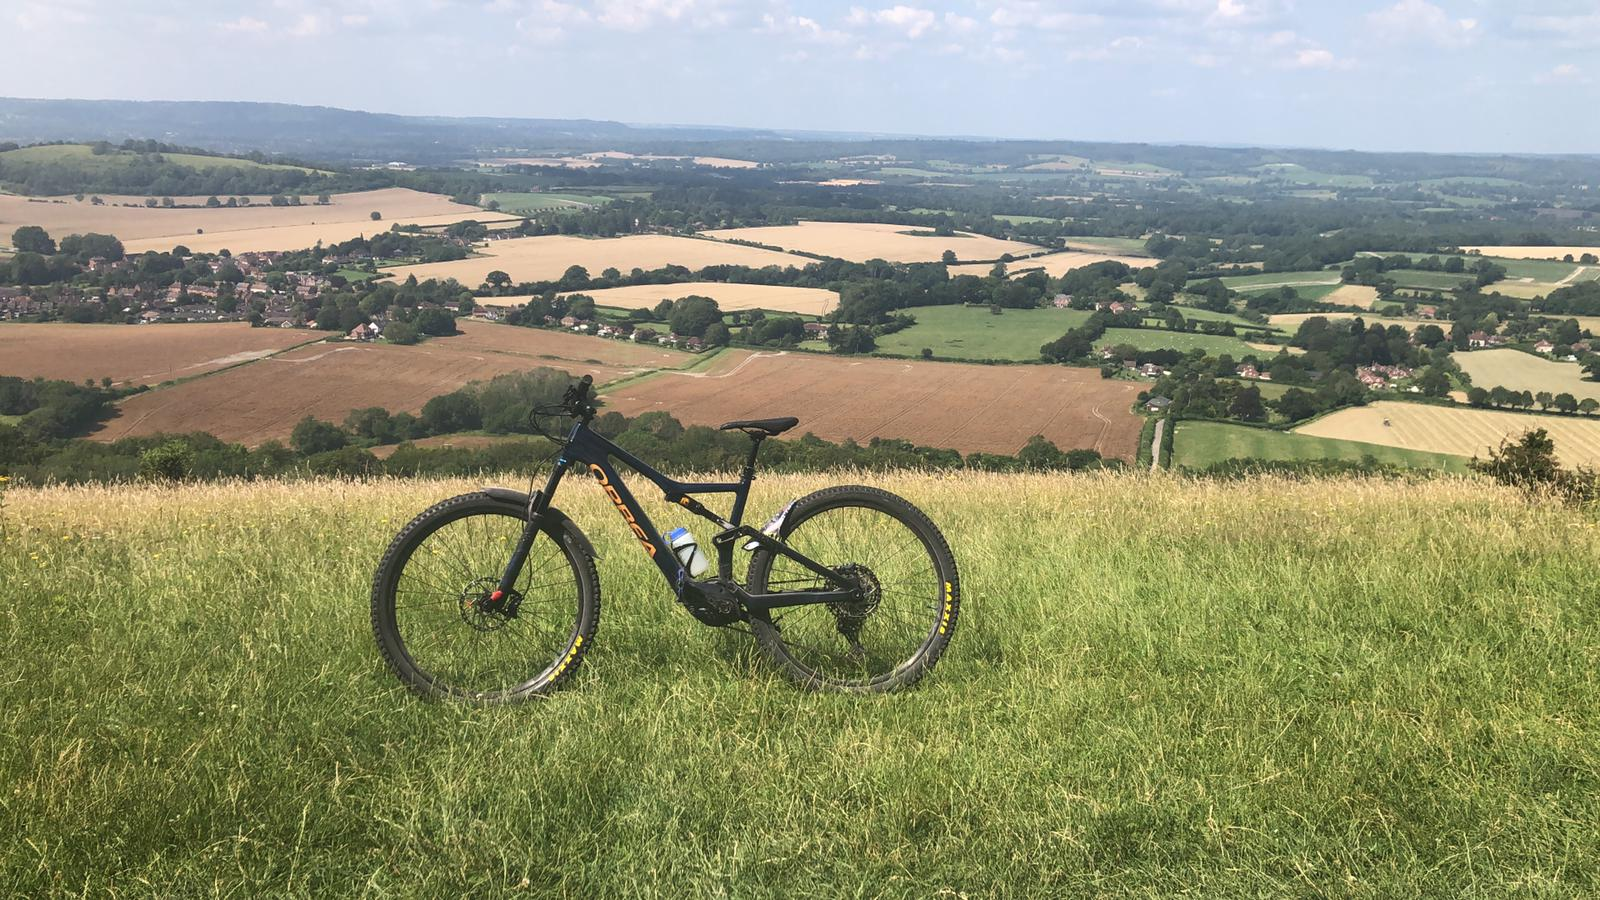 Bike on hill in South Downs National Park